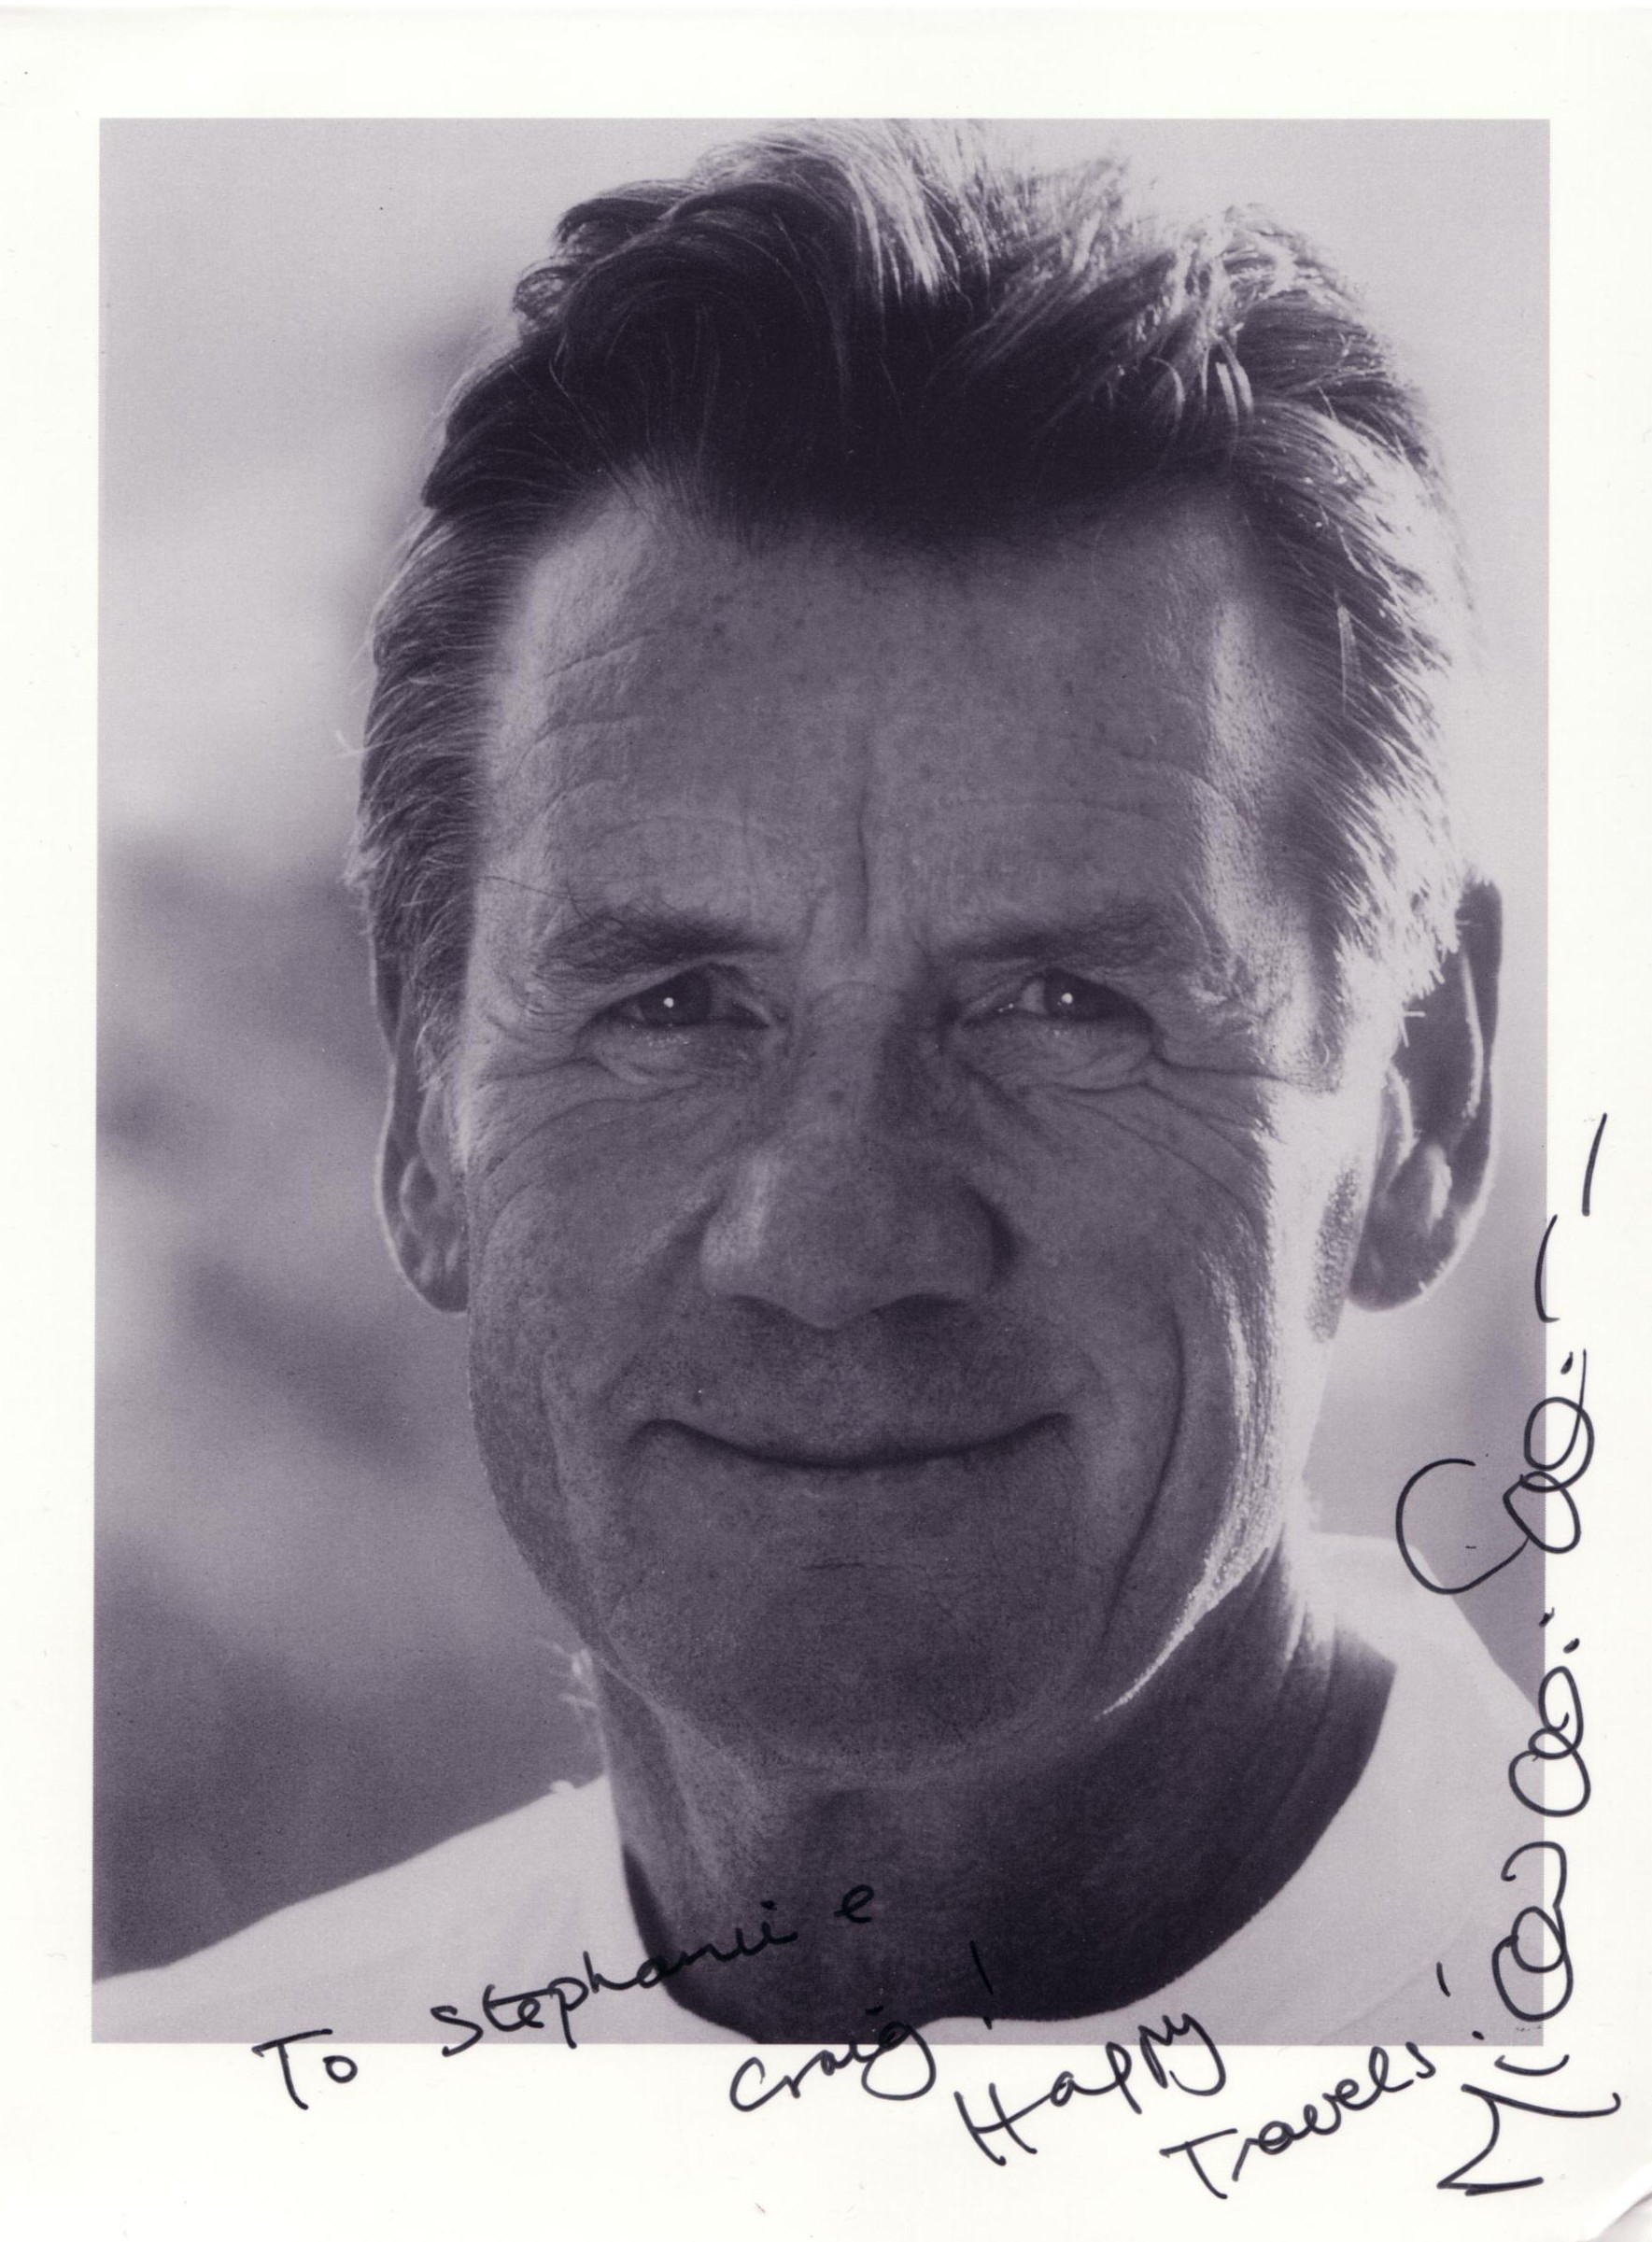 To Stephanie Craig! Happy Travels! Michael Palin (November 2002)